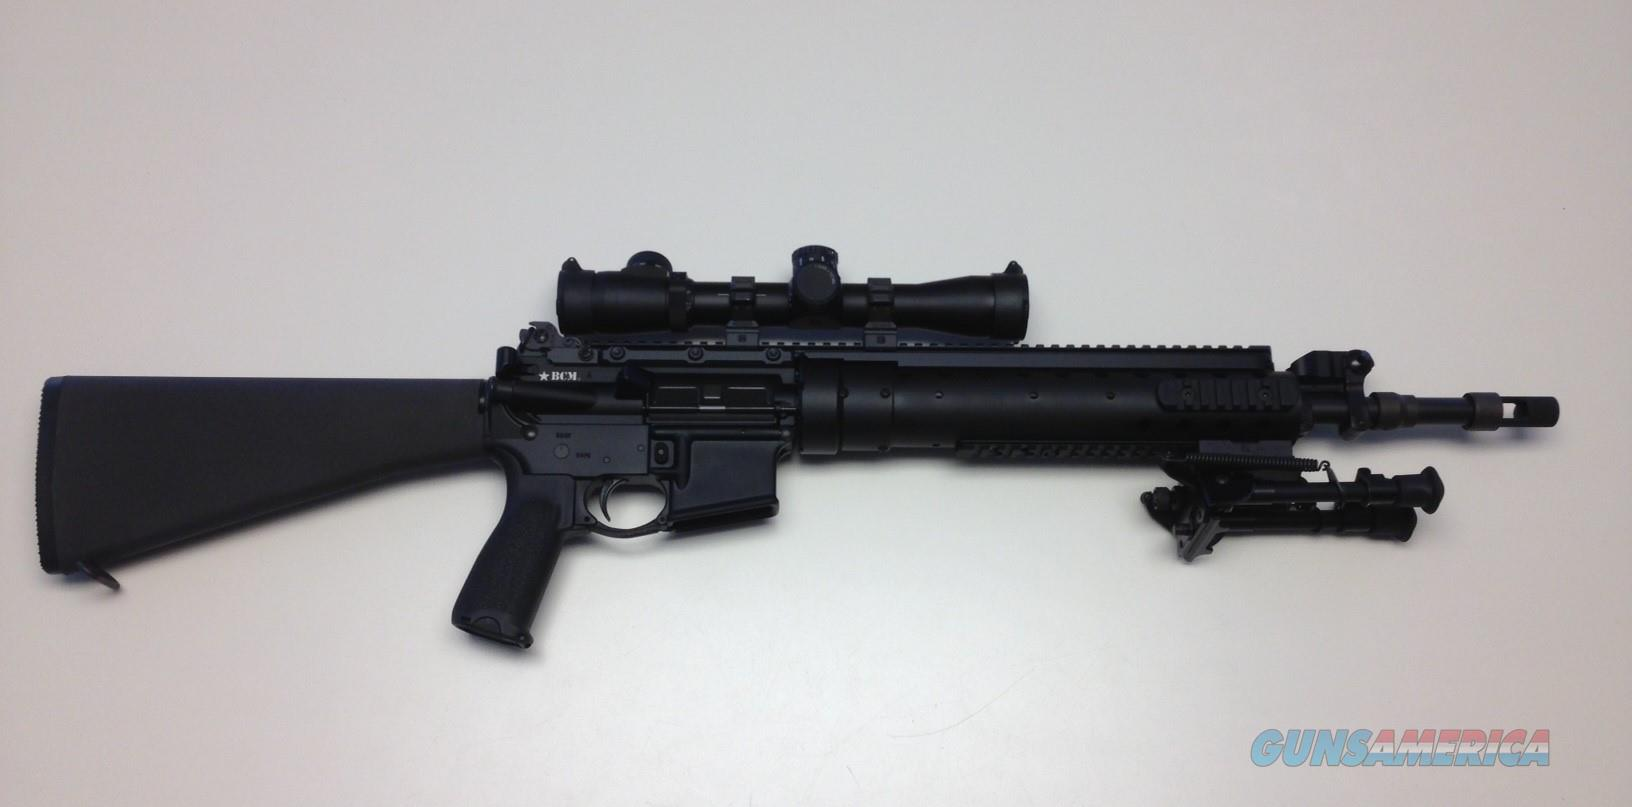 Bravo Company BCM MK12 MOD 0 Complete Rifle Package  Guns > Rifles > Tactical/Sniper Rifles